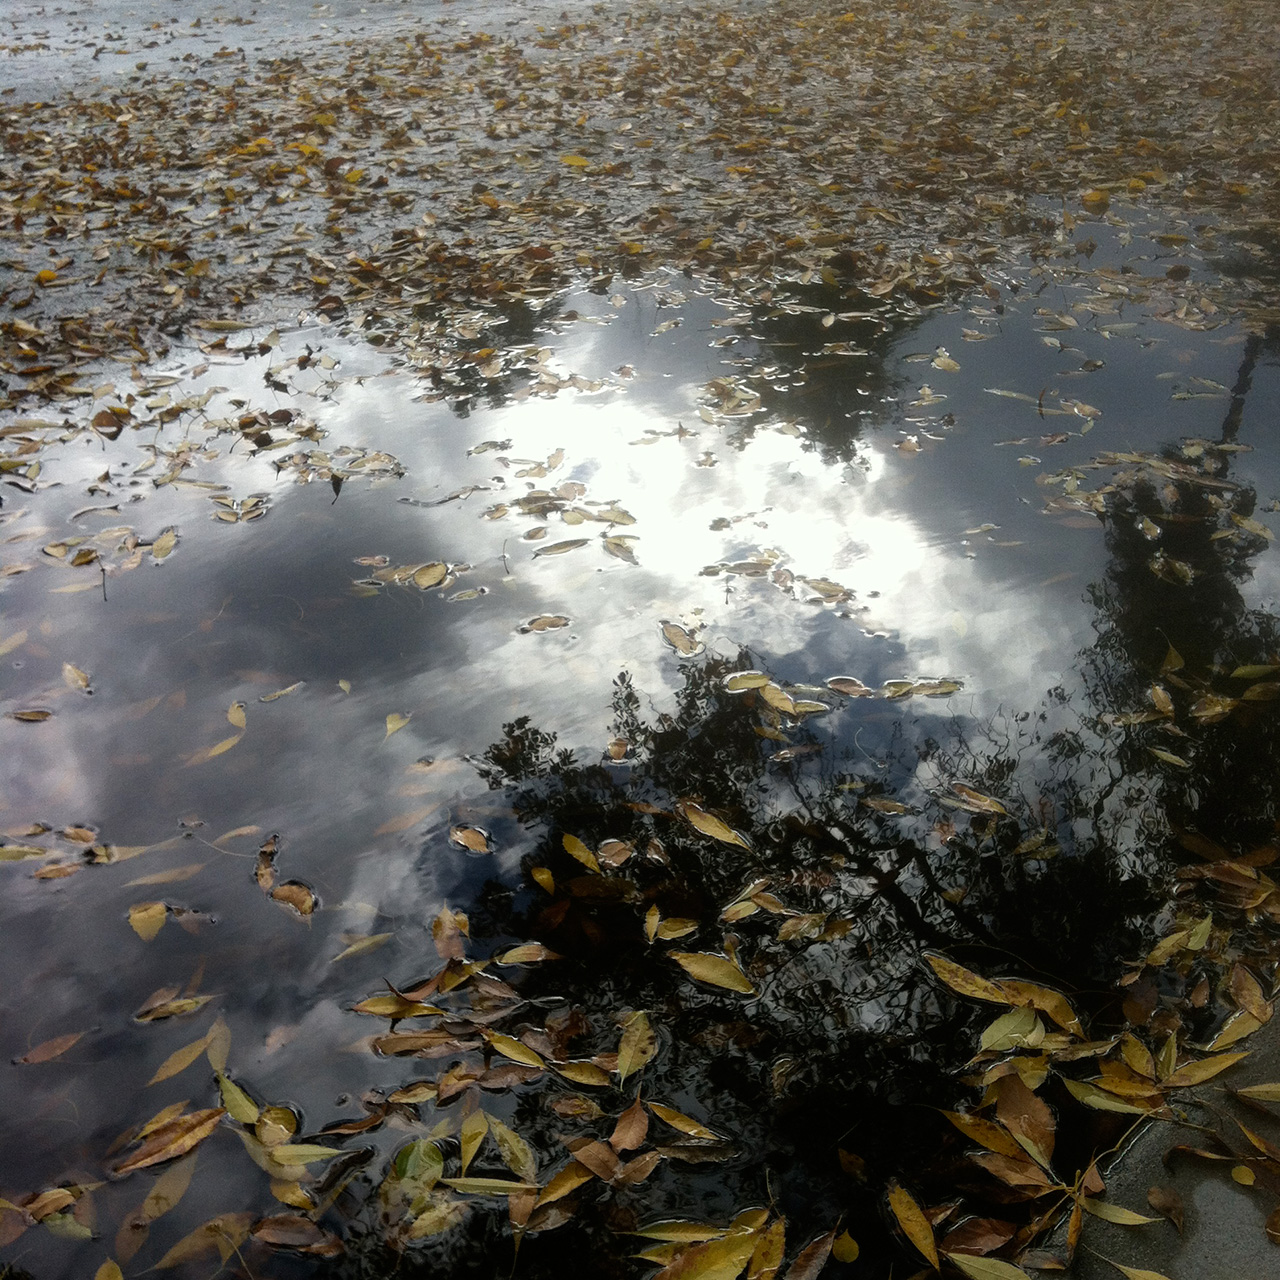 LA_Fall_puddle_leaves.jpg